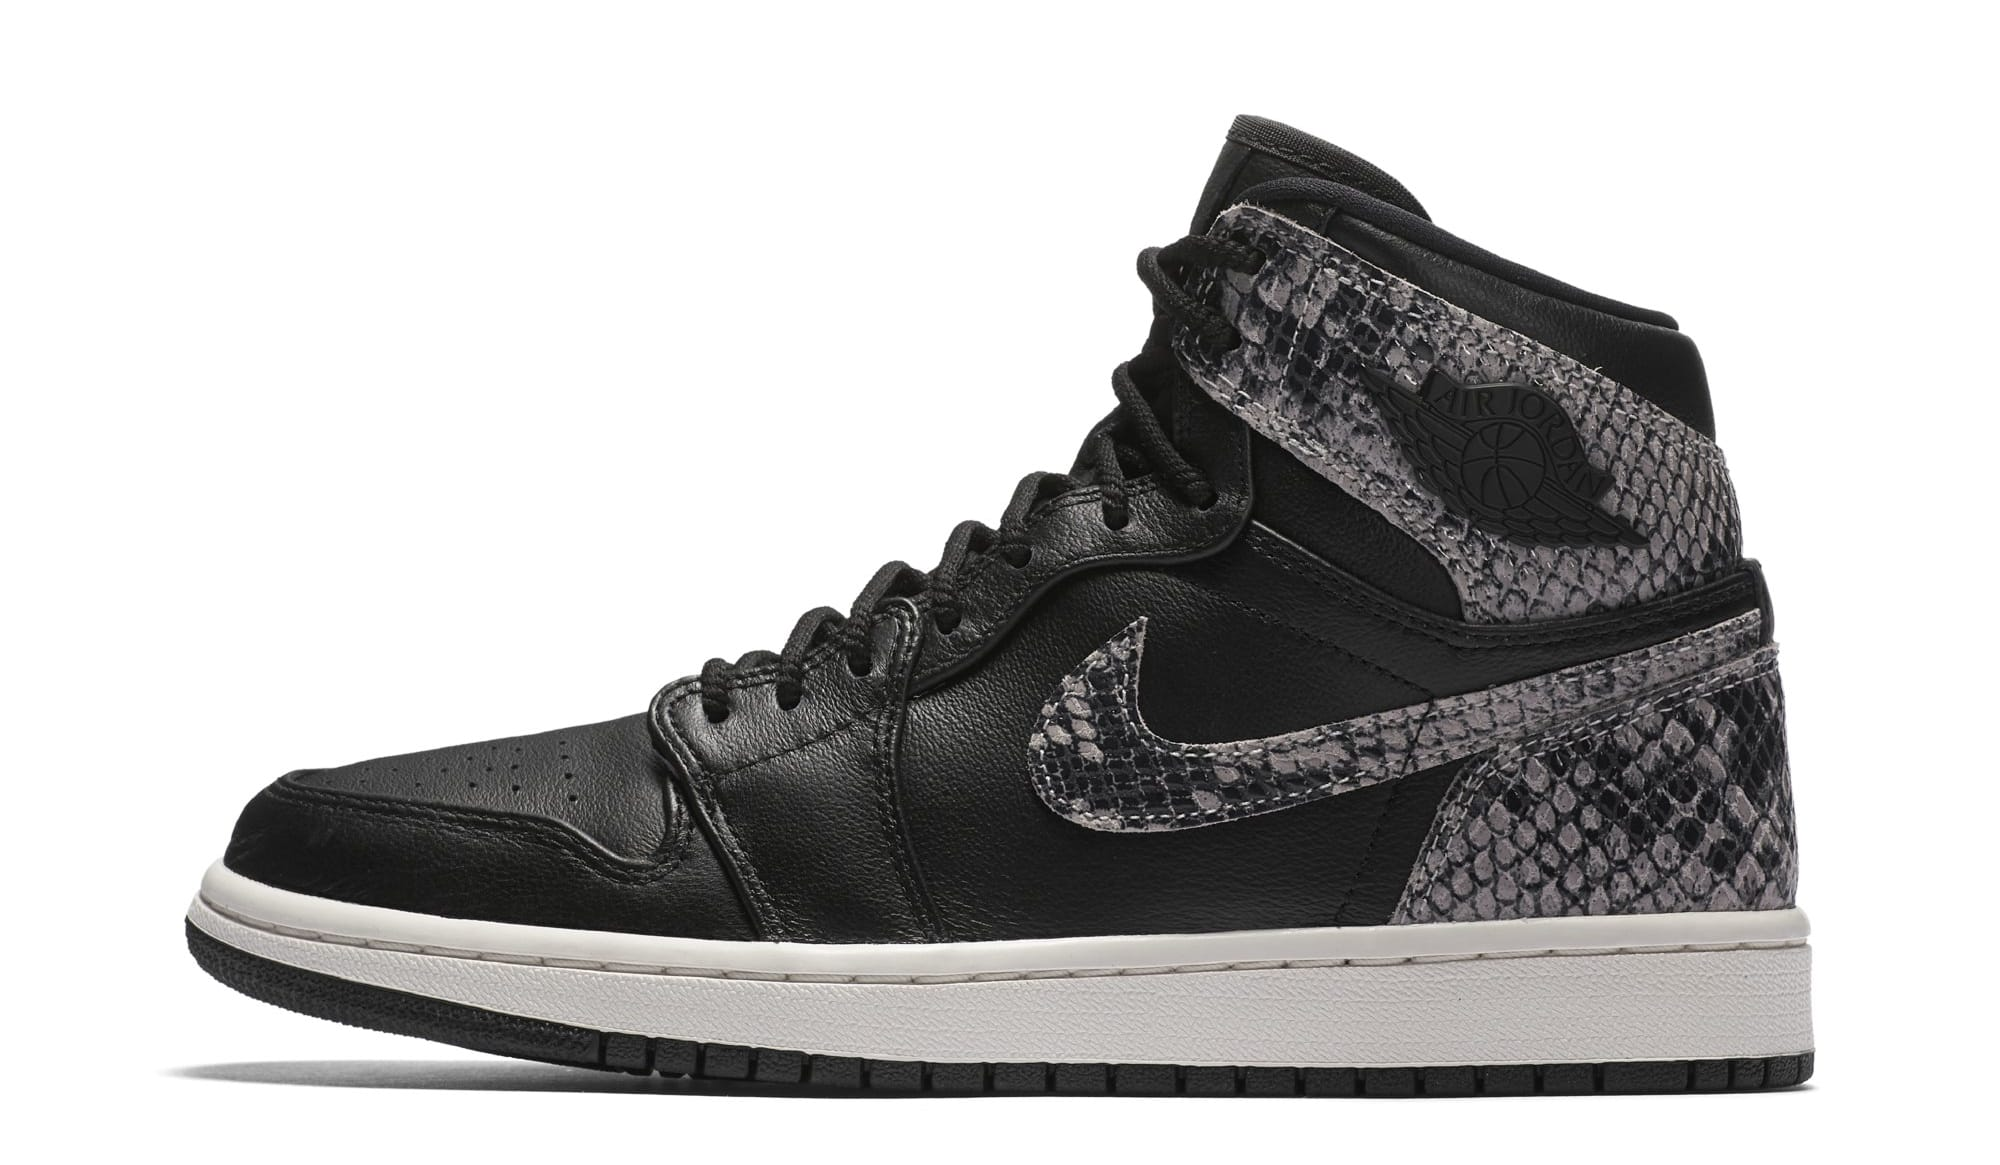 Air Jordan 1 Retro High Premium Women's Snake 'Black/Phantom' AH7389-014 (Lateral)